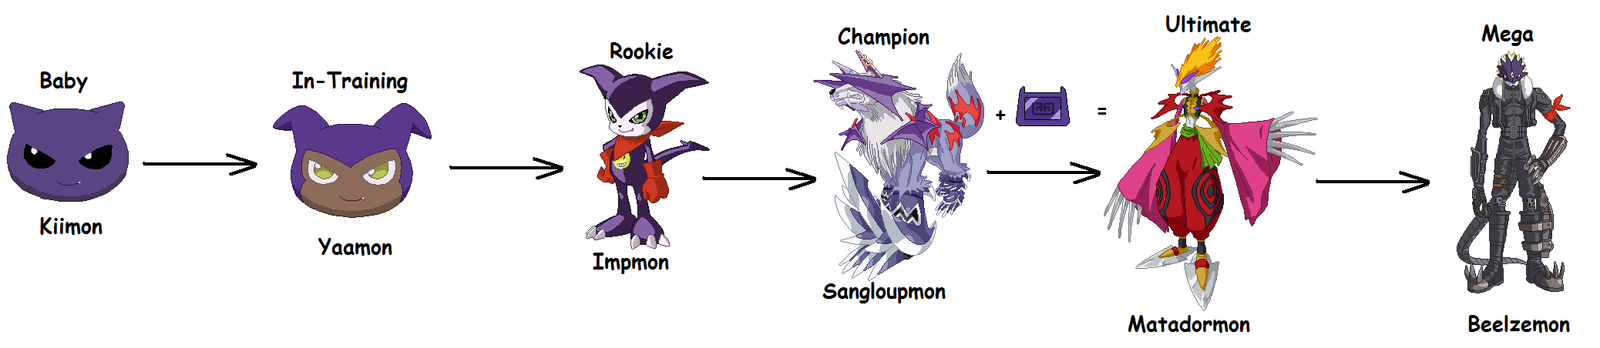 Impmon Digivolution Line By Anawesometale On DeviantArt